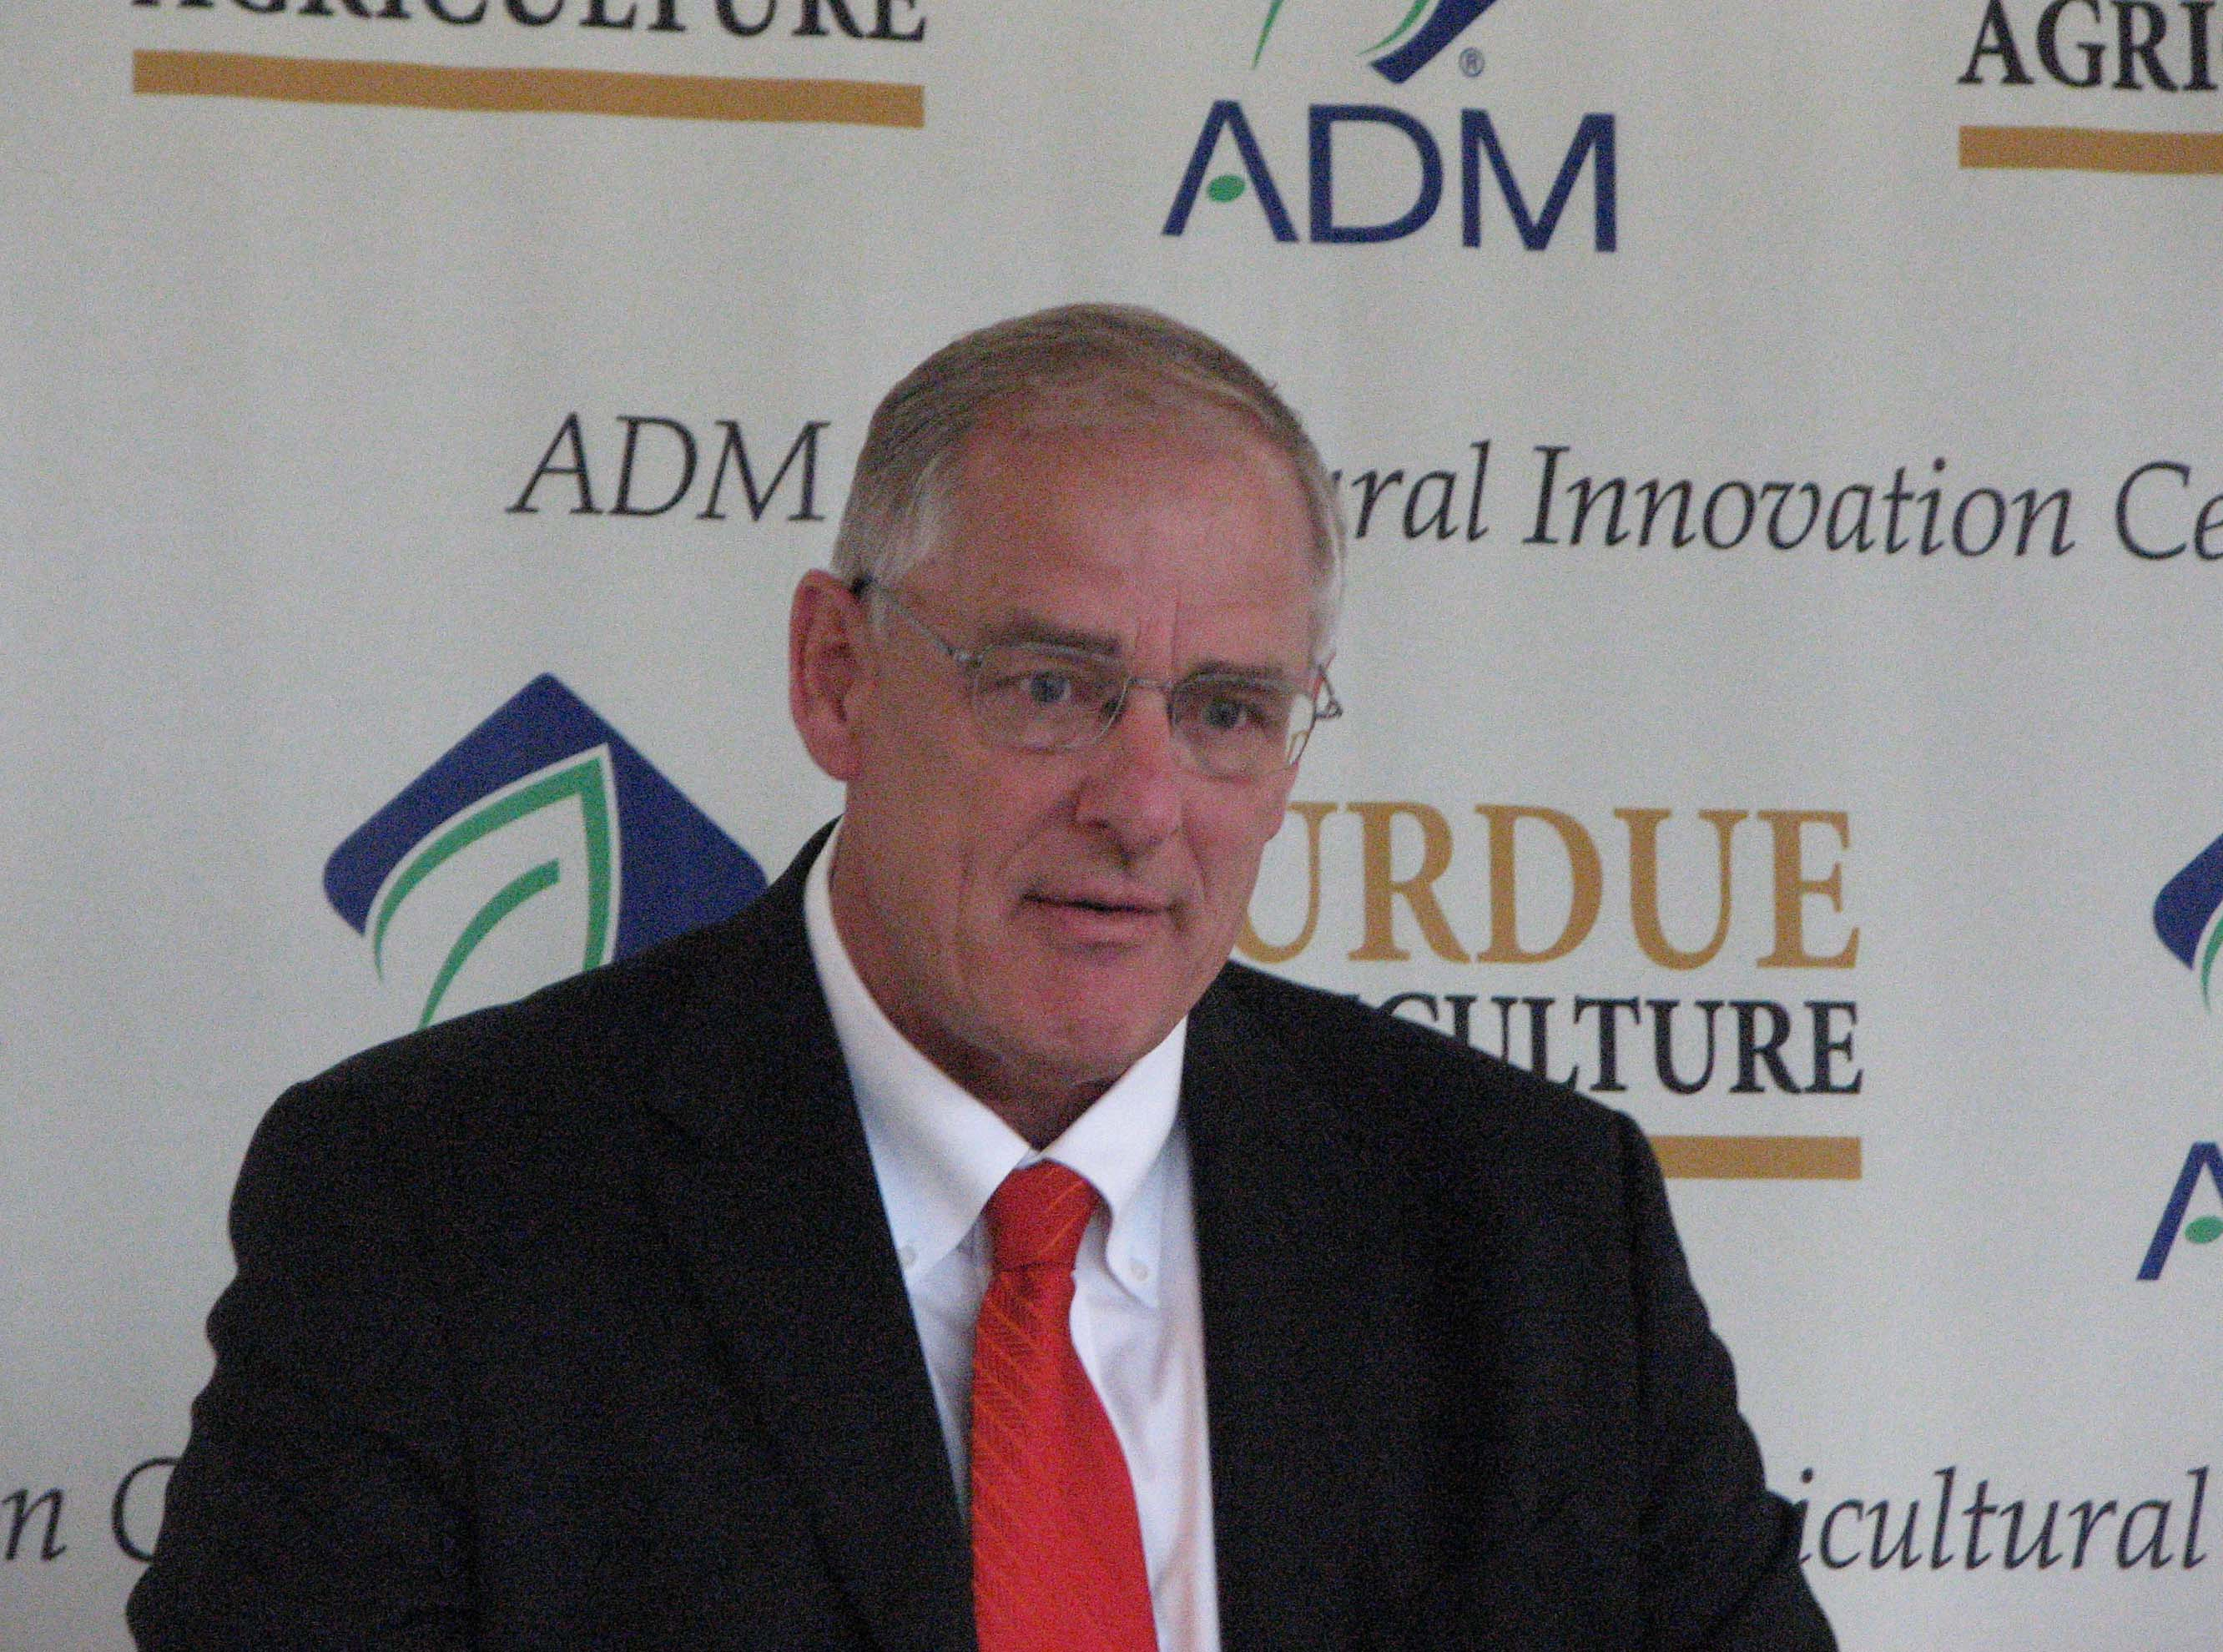 Craig Huss, ADM Senior Vice President and President, Agricultural Services Business Unit